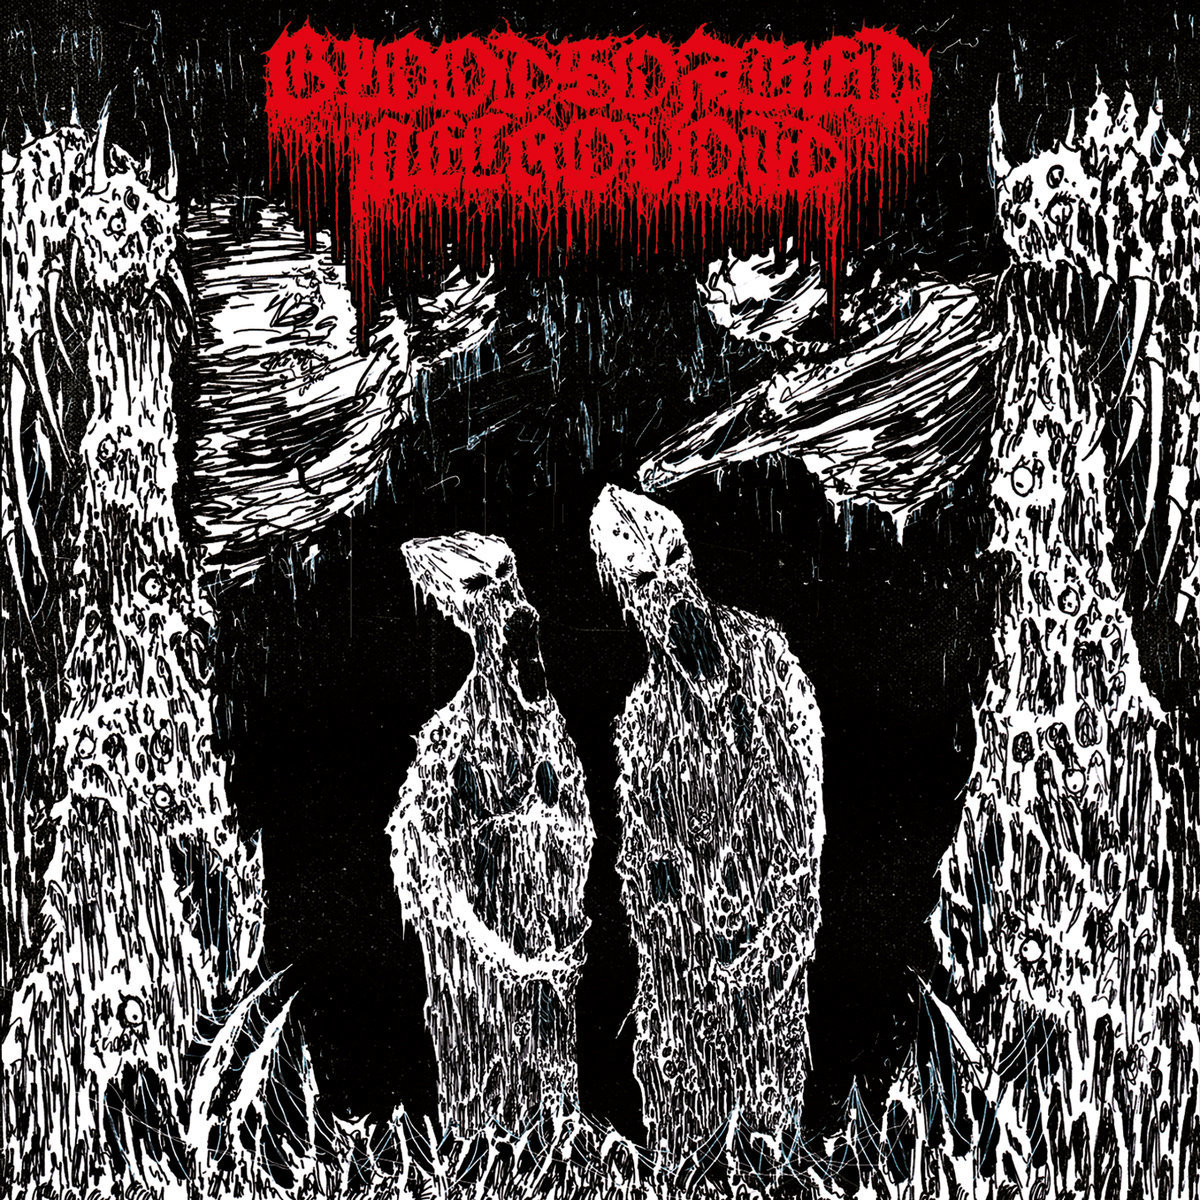 Bloodsoaked Necrovoid - The Apocryphal Paths Of The Ancient 8th Vitriolic Transcendence